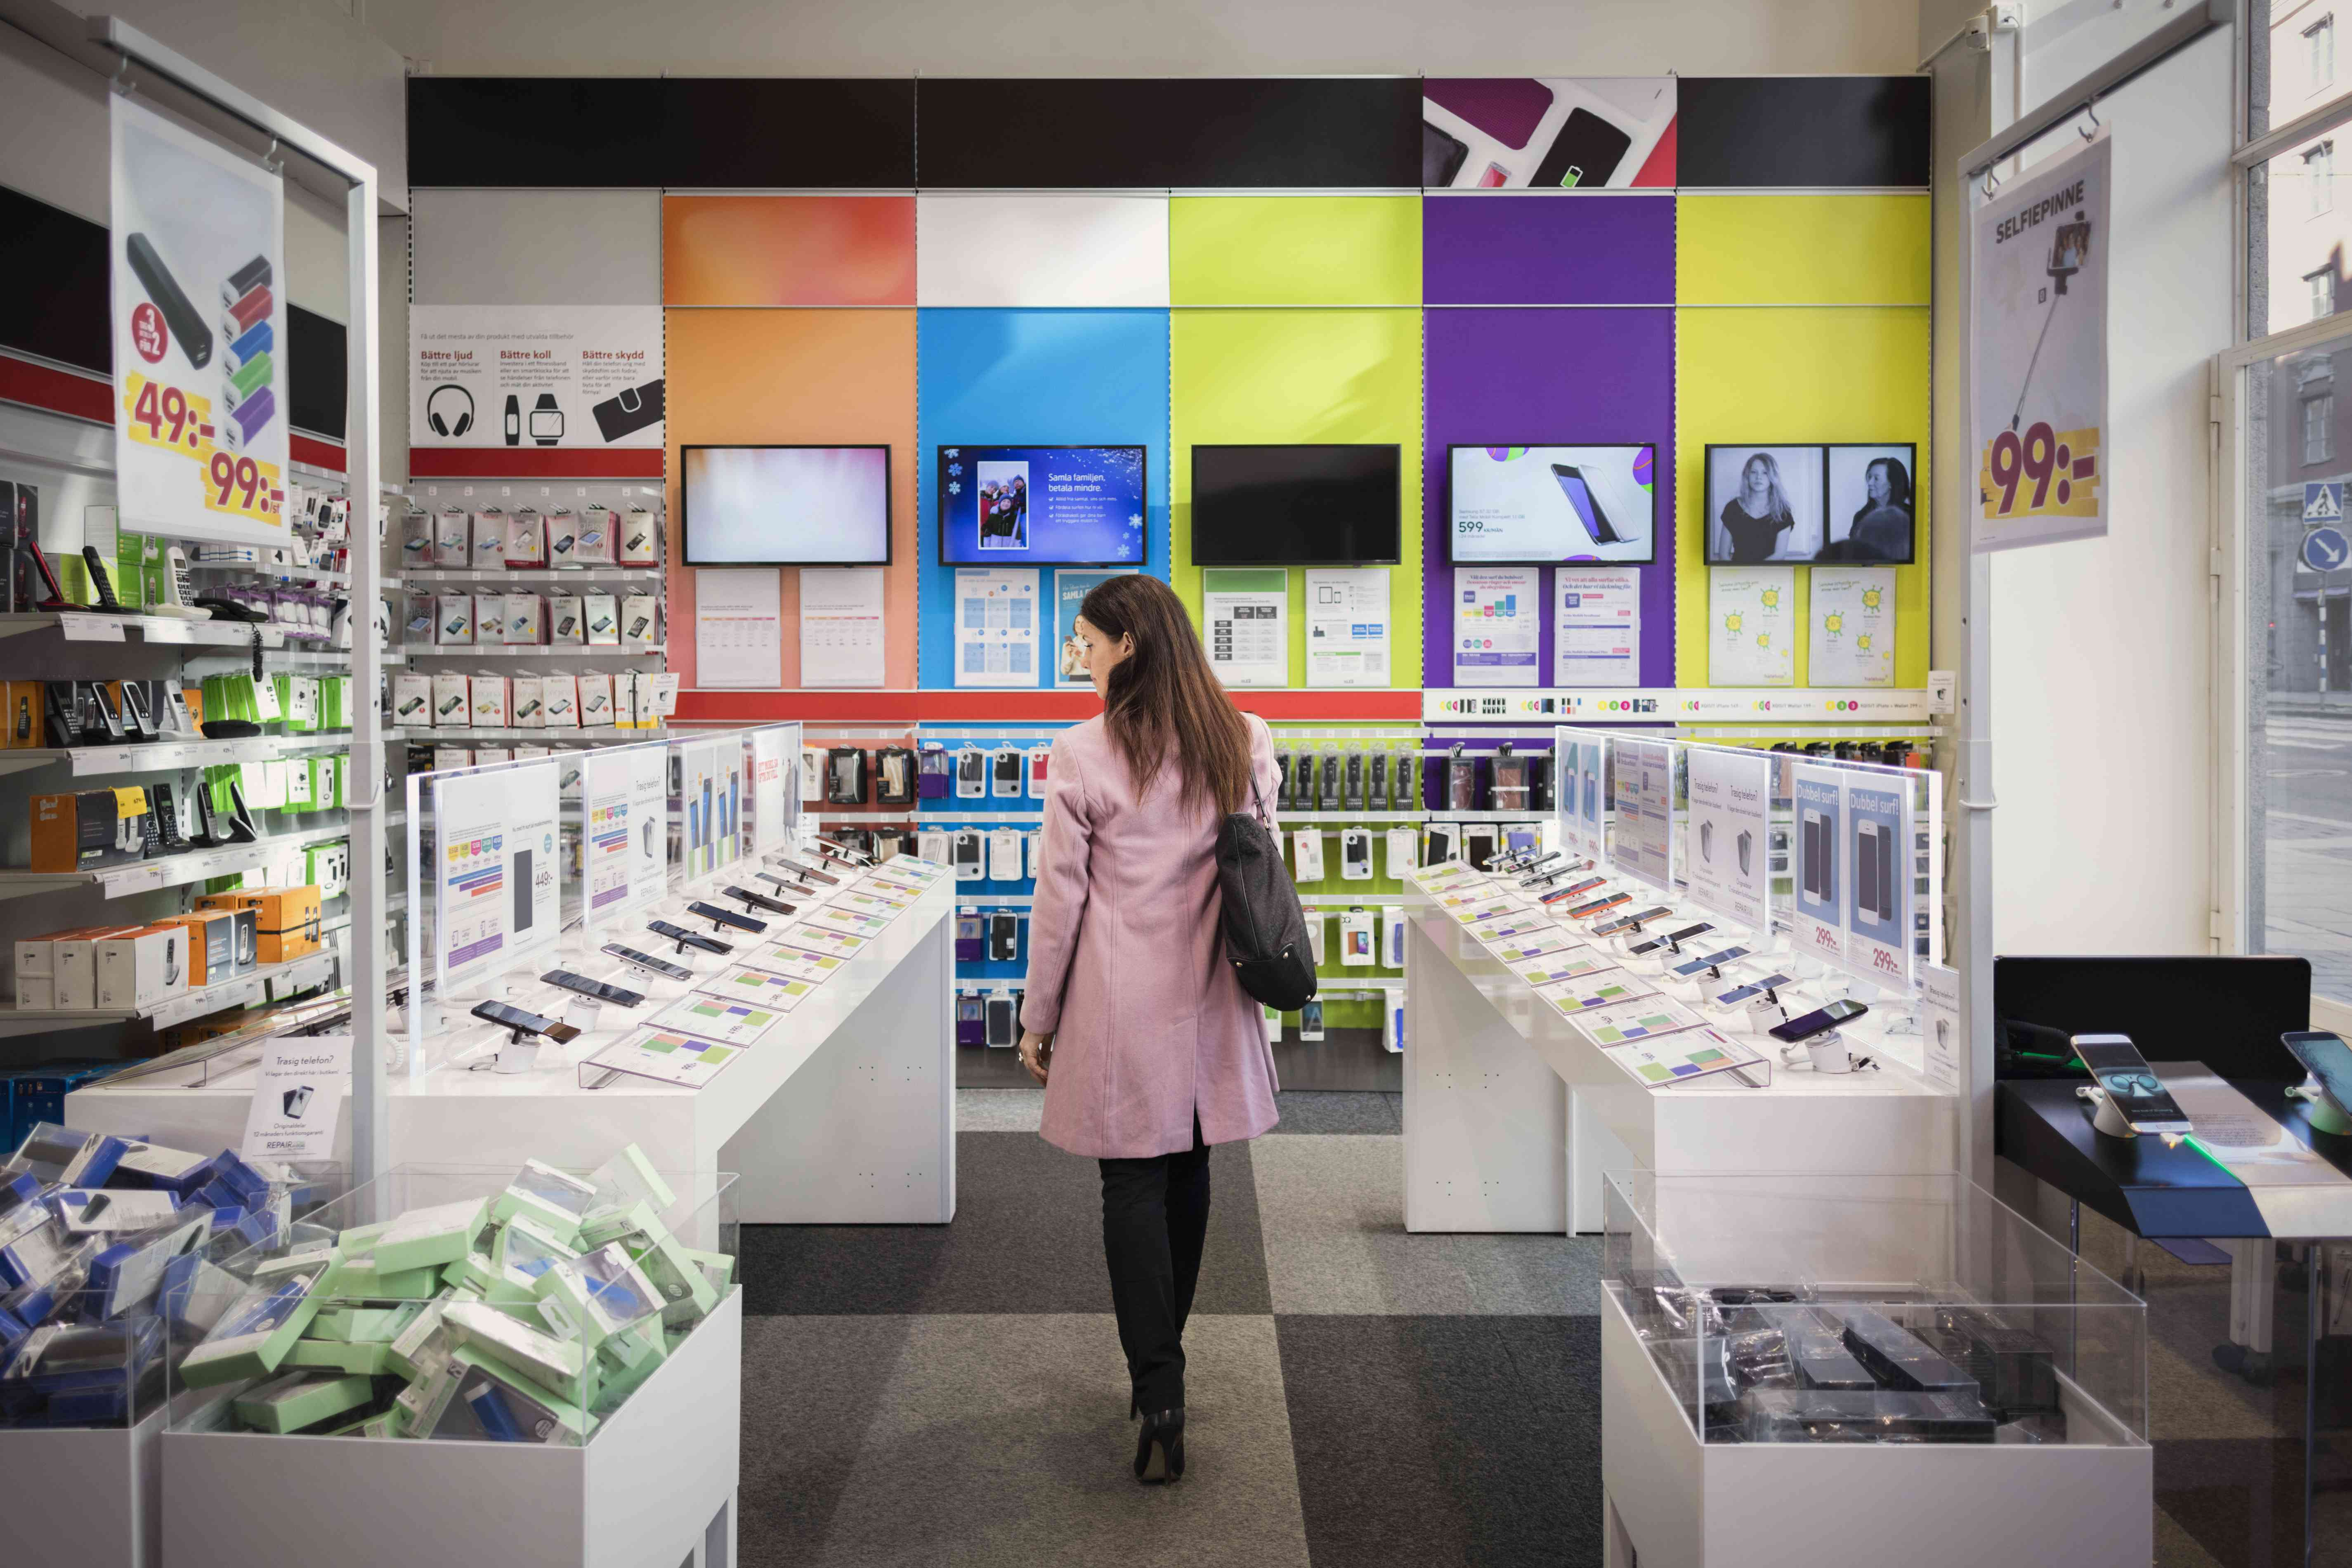 Woman browses smartphones for sale in shop